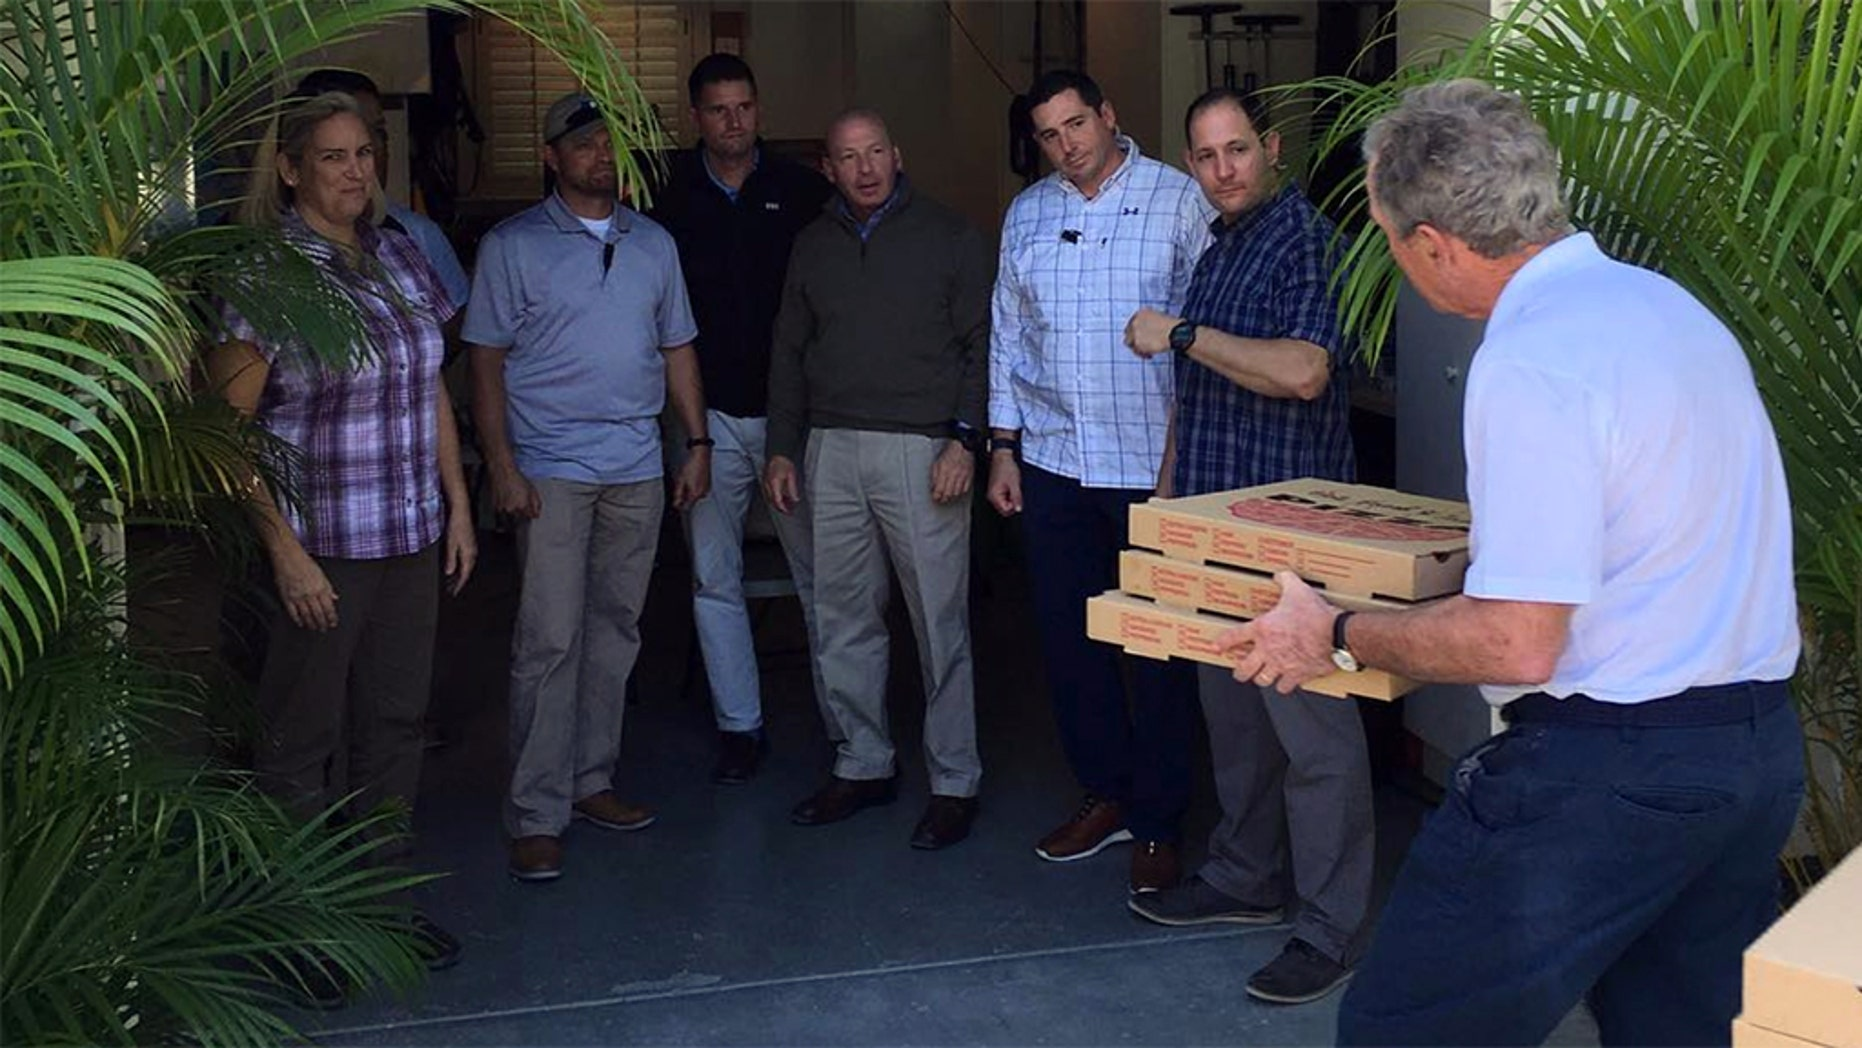 Ex-President George W. Bush treats Secret Service detail to pizza